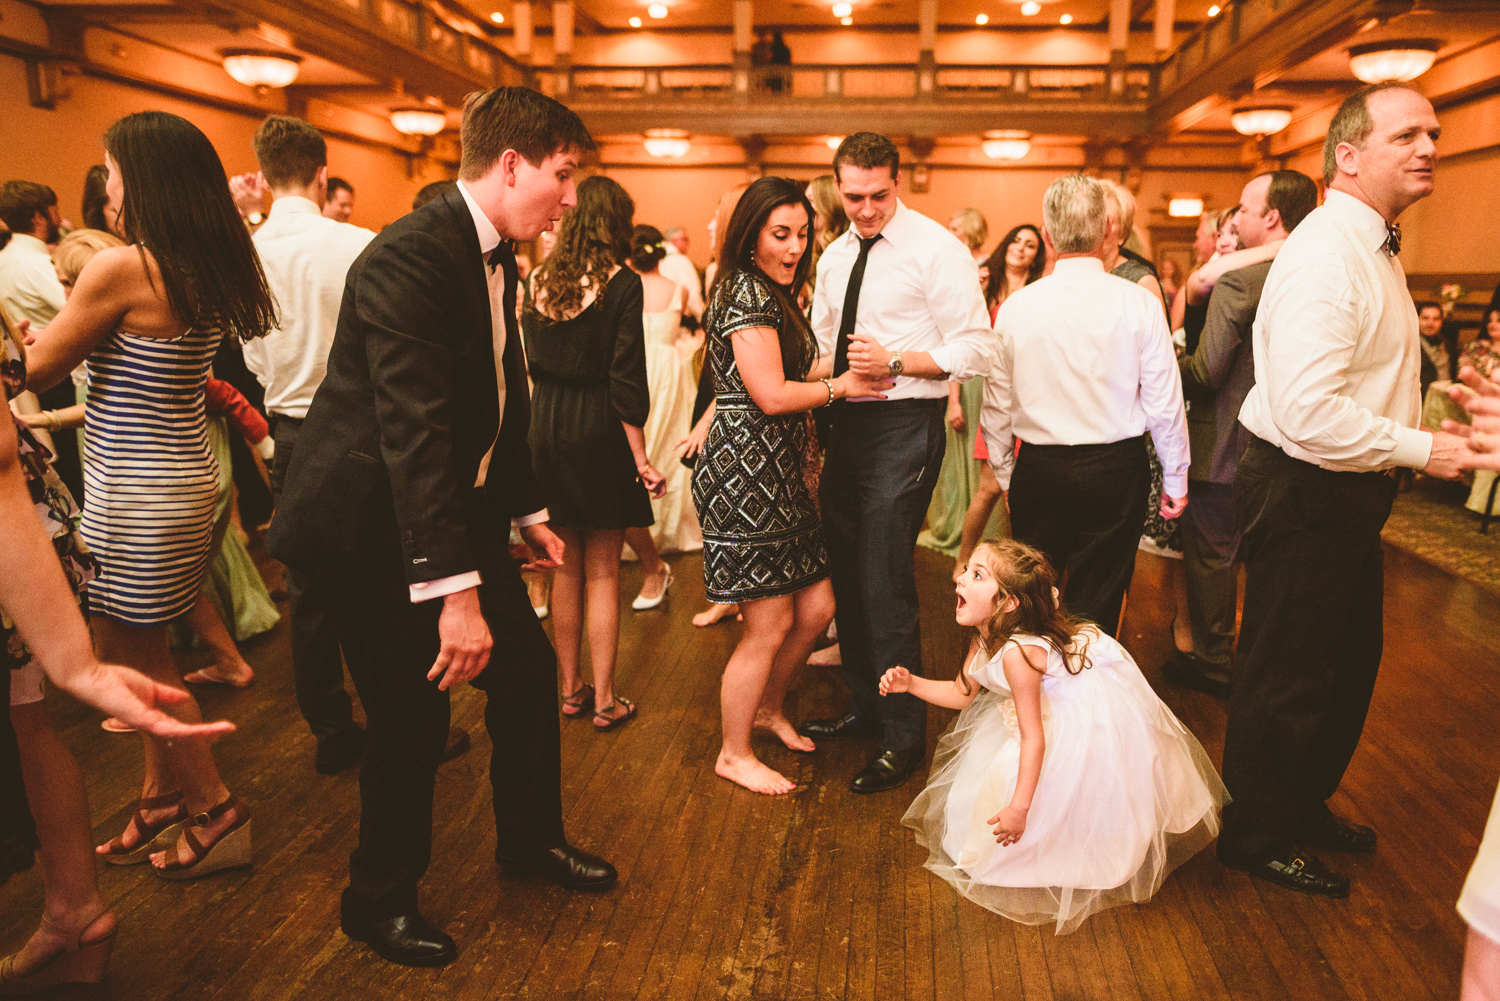 026 - groom and kid laughing at each other during wedding reception.jpg